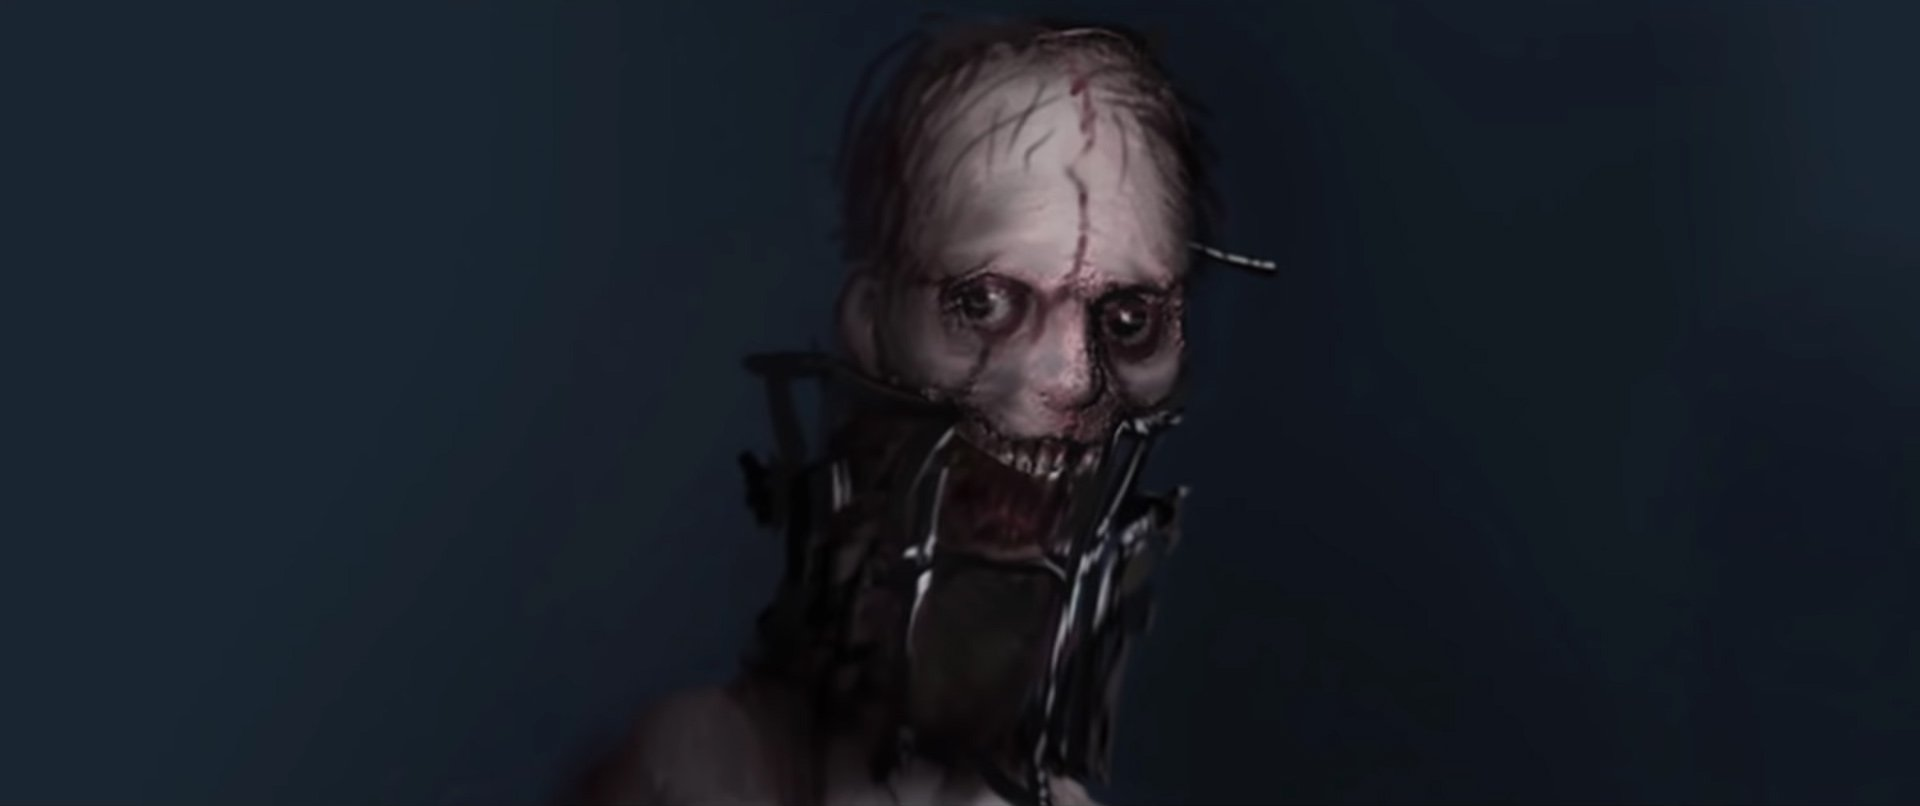 Resident Evil 2 Scrapped Ideas